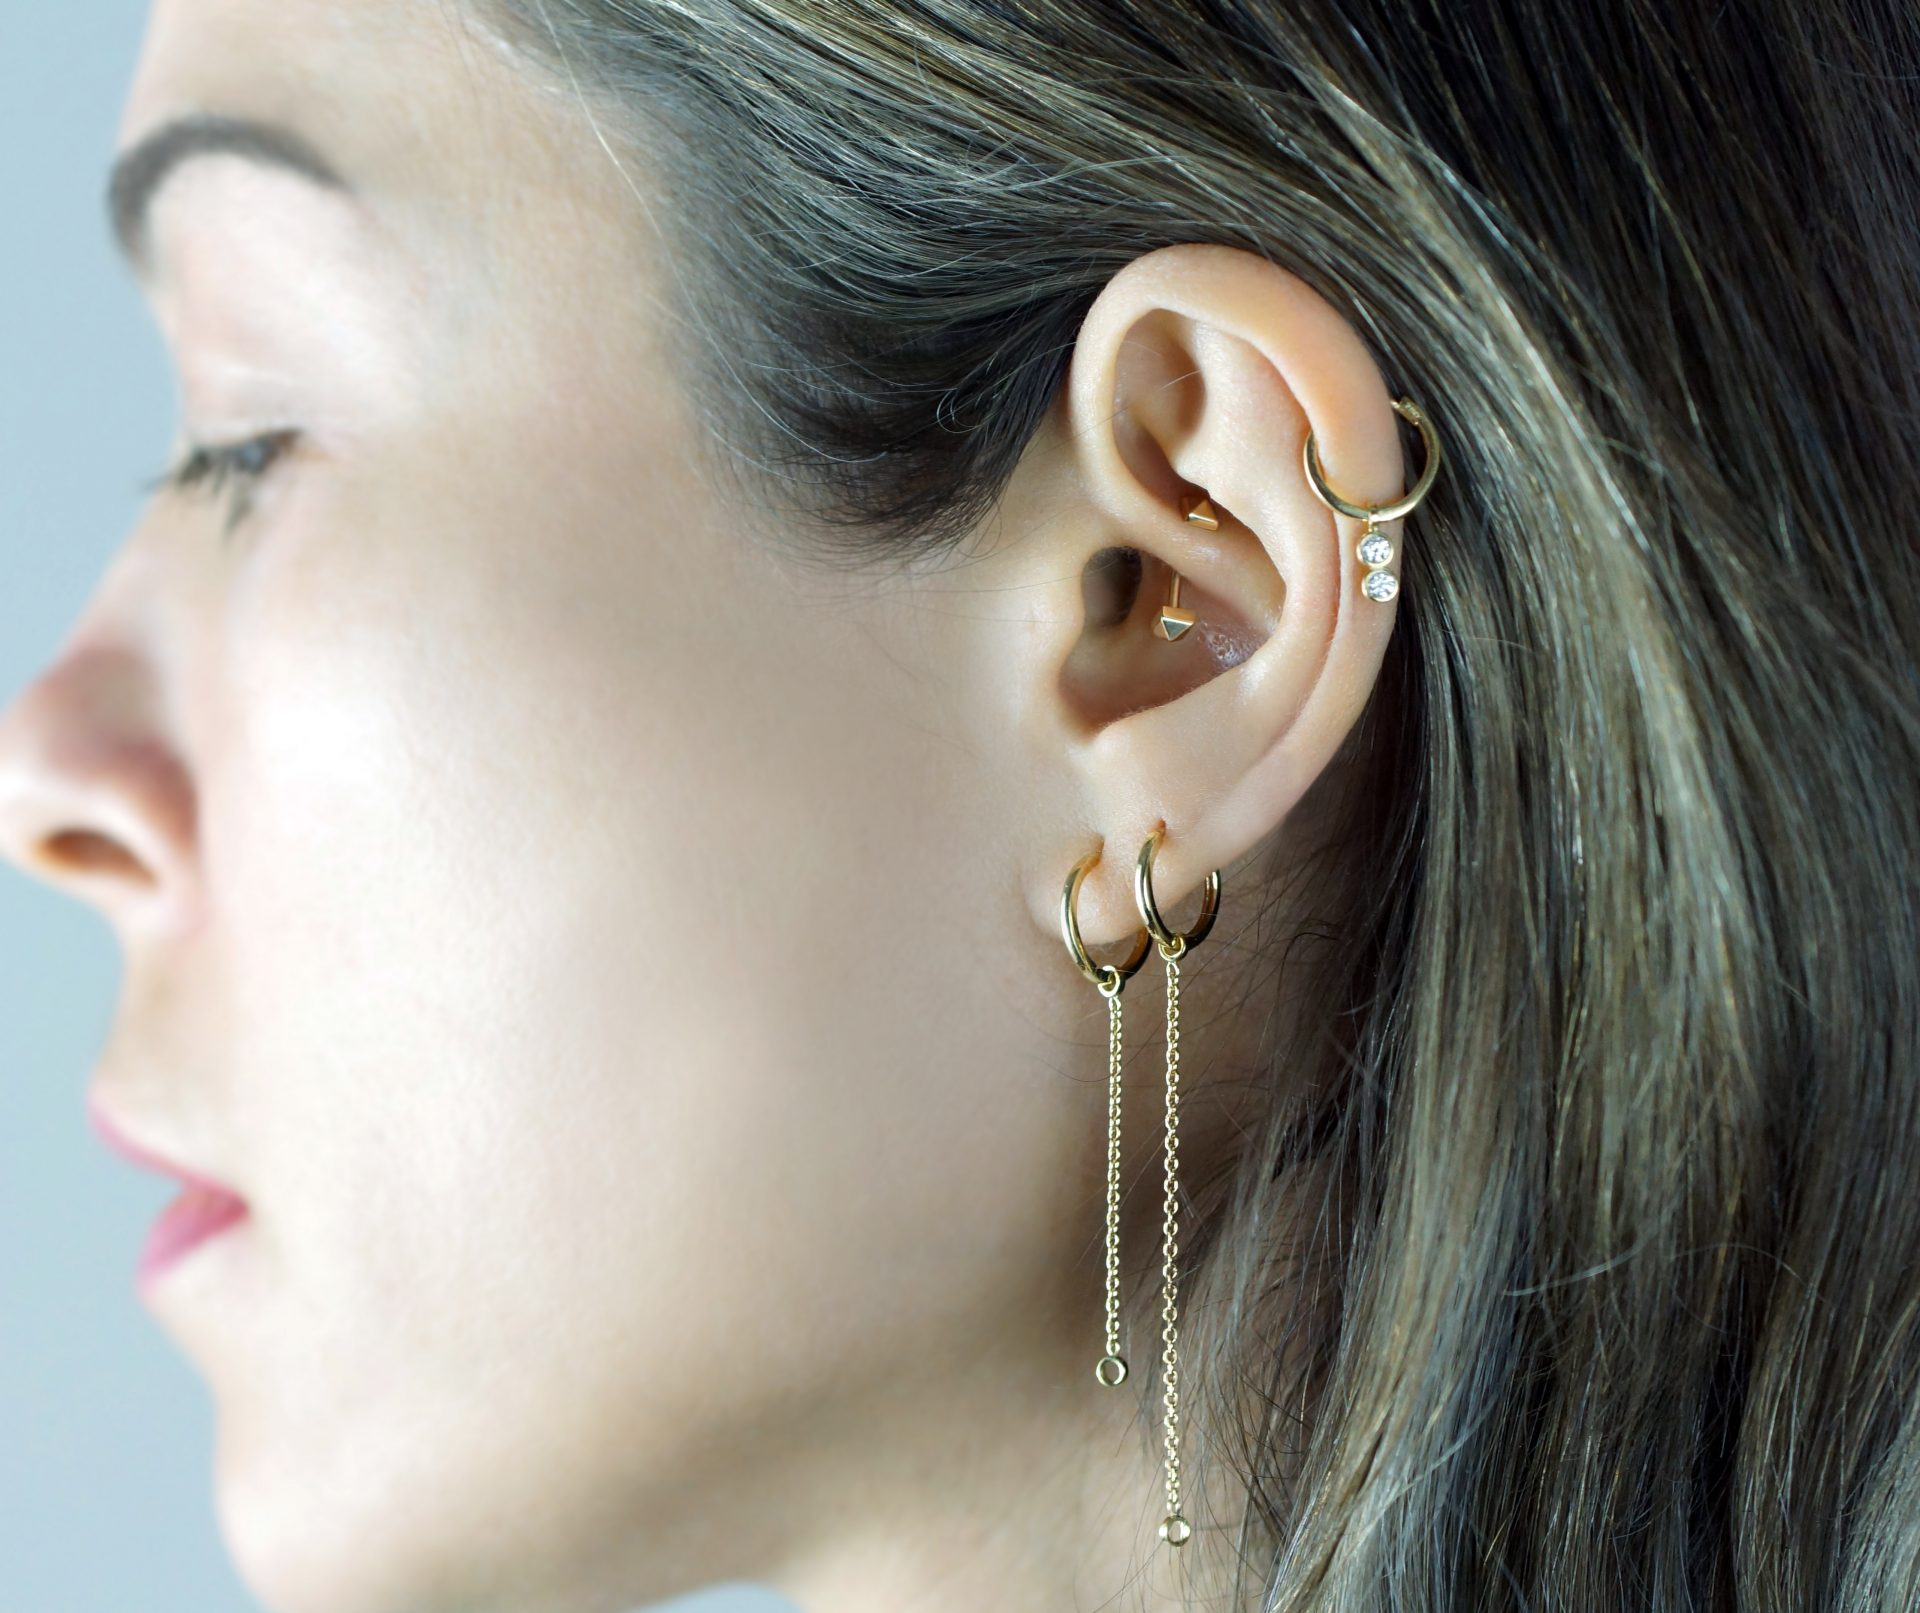 WHAT EAR PIERCINGS GO WELL TOGETHER? See our gallery for ear piercing combinations that prove teamwork makes the dream work!